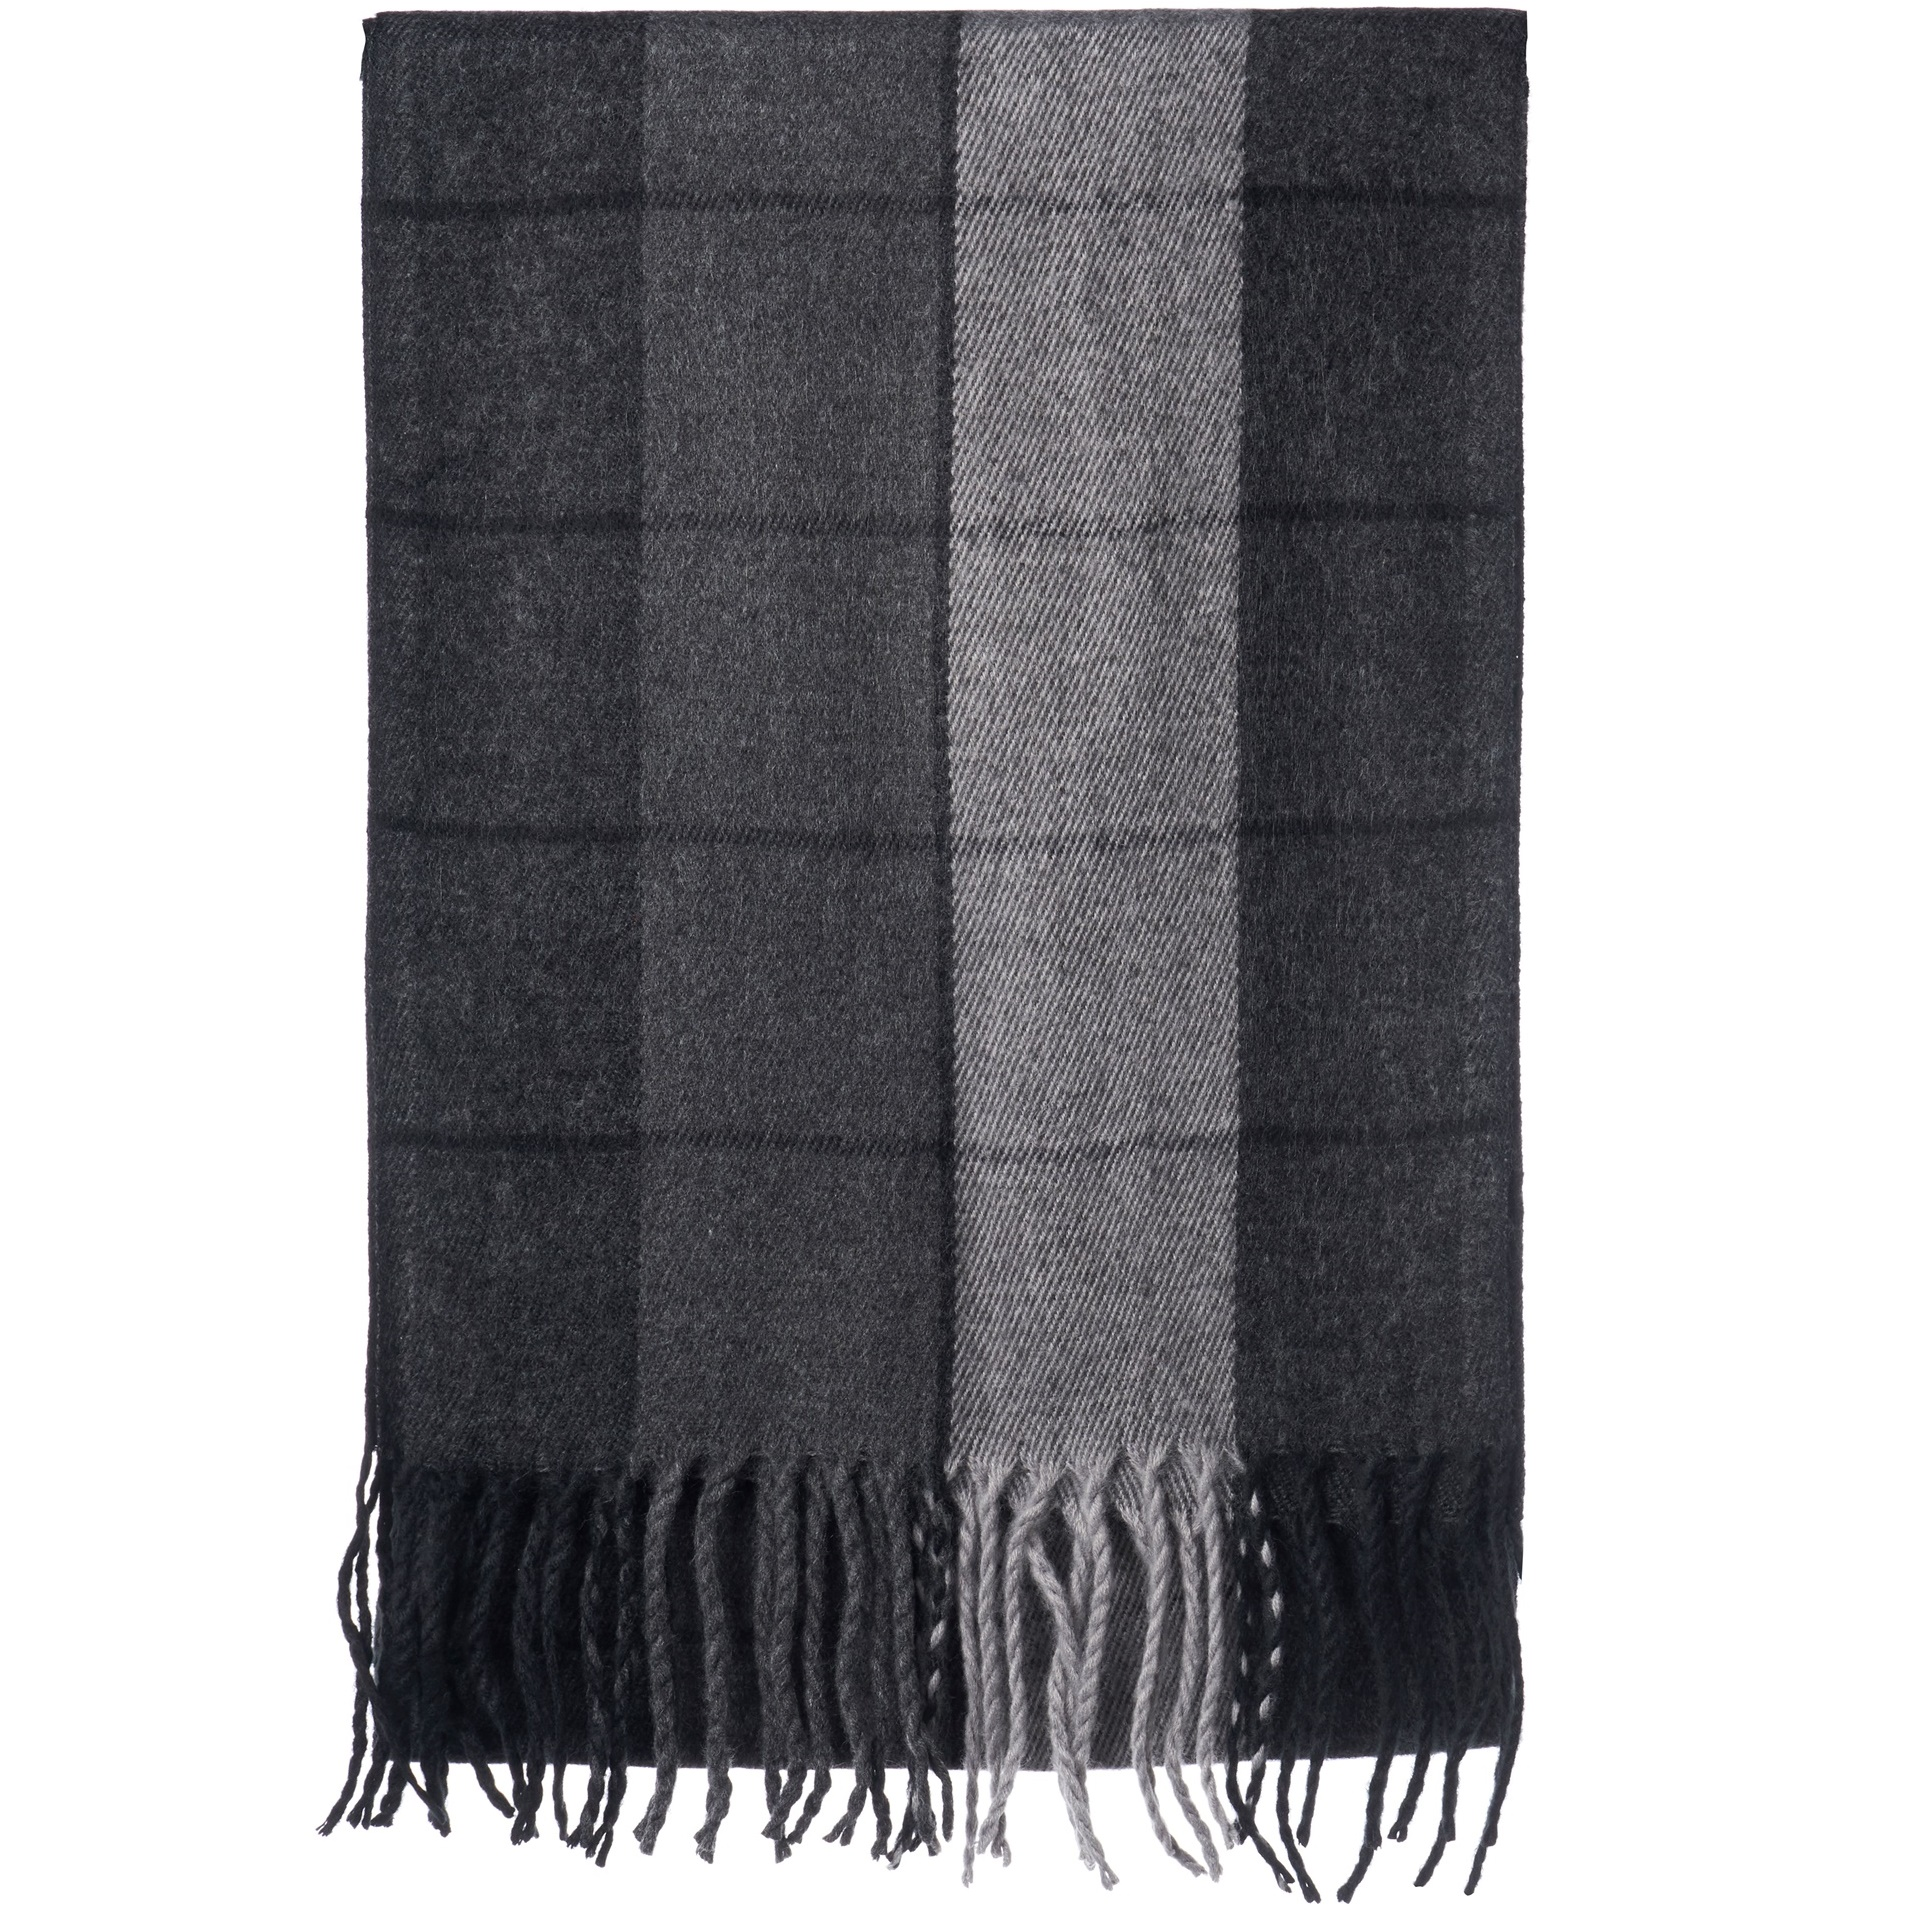 Hammer-Anvil-Mens-Plaid-Striped-Scarf-Womens-Winter-Scarves-Cashmere-Soft-Feel thumbnail 30